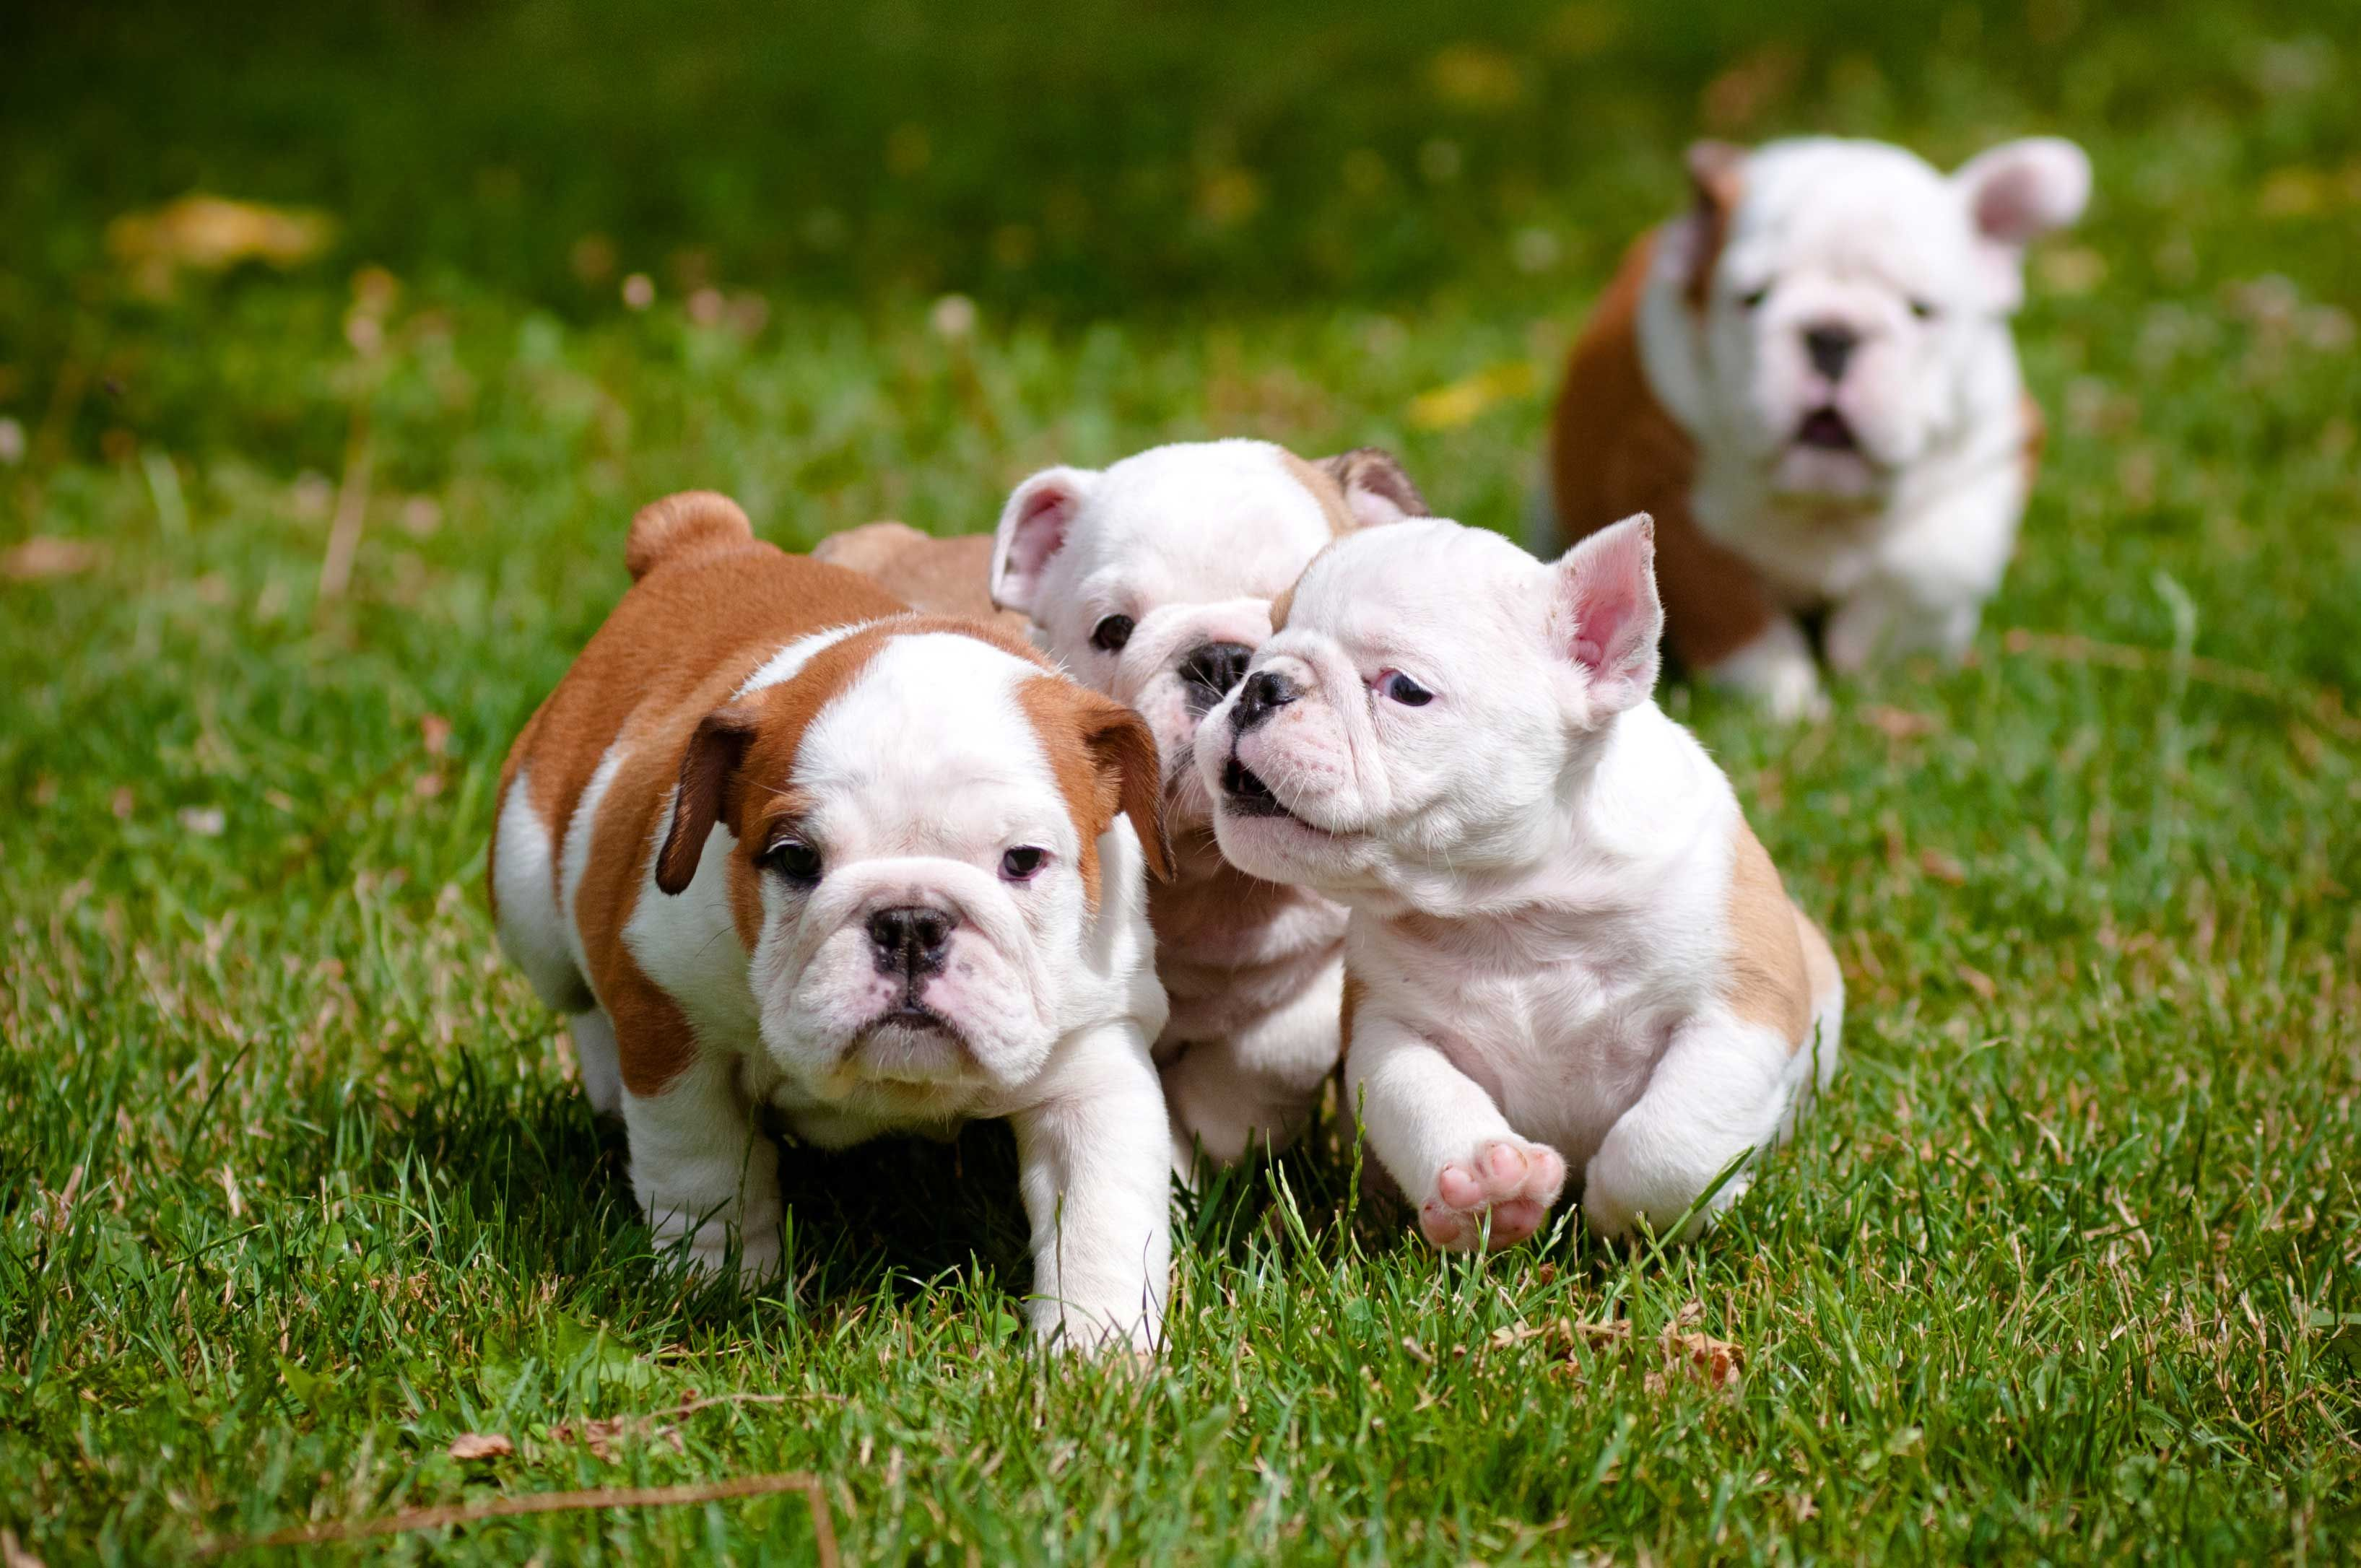 Pet Insurance Explained The Importance Of Insuring Your Pet In 2020 English Bulldog Puppies Bulldog Puppies Dog Behavior